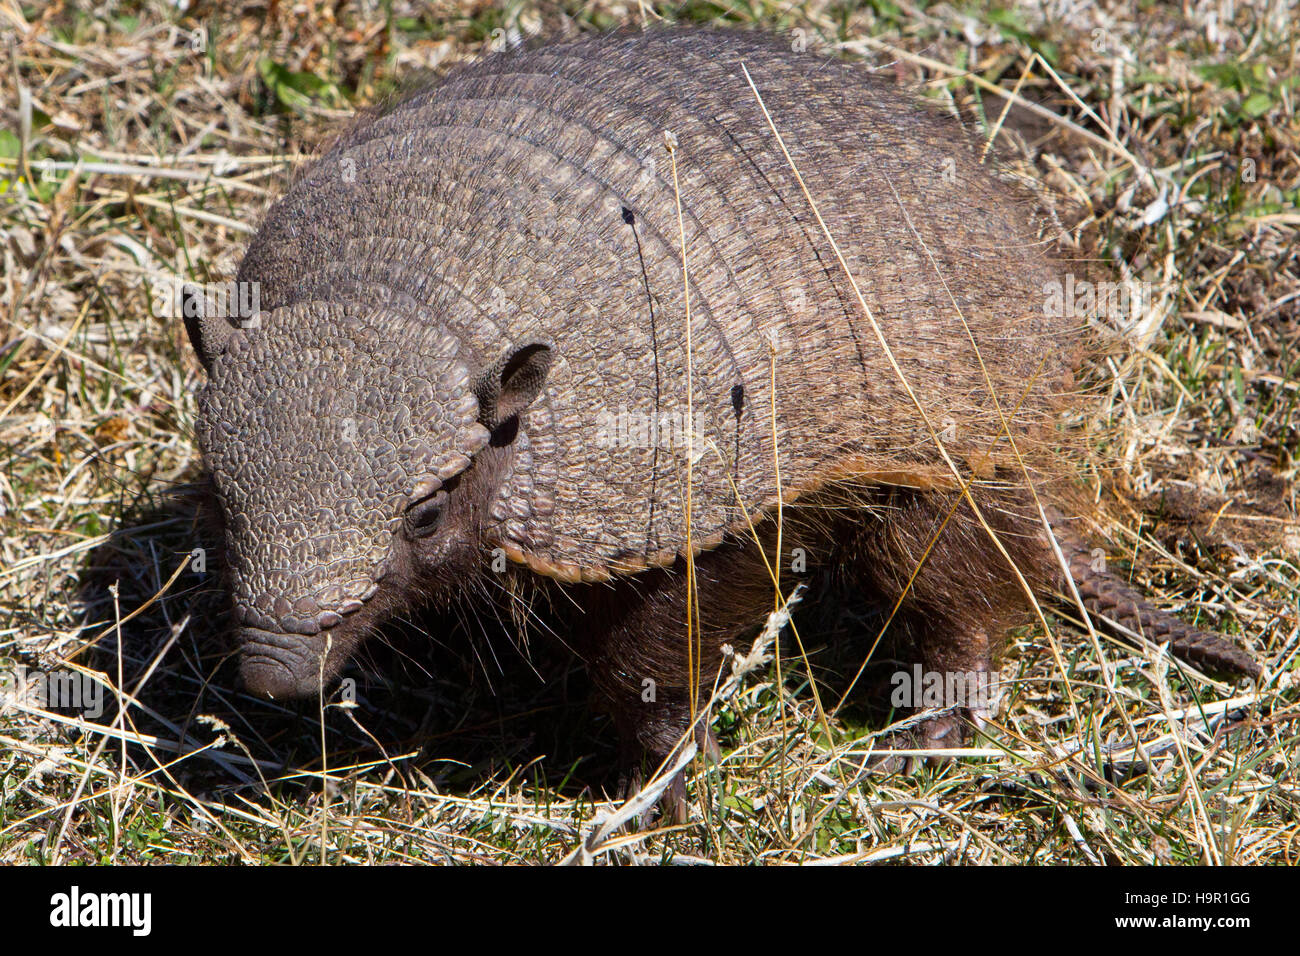 Hairy armadillo in Torres del Paine National Park, Chile - Stock Image